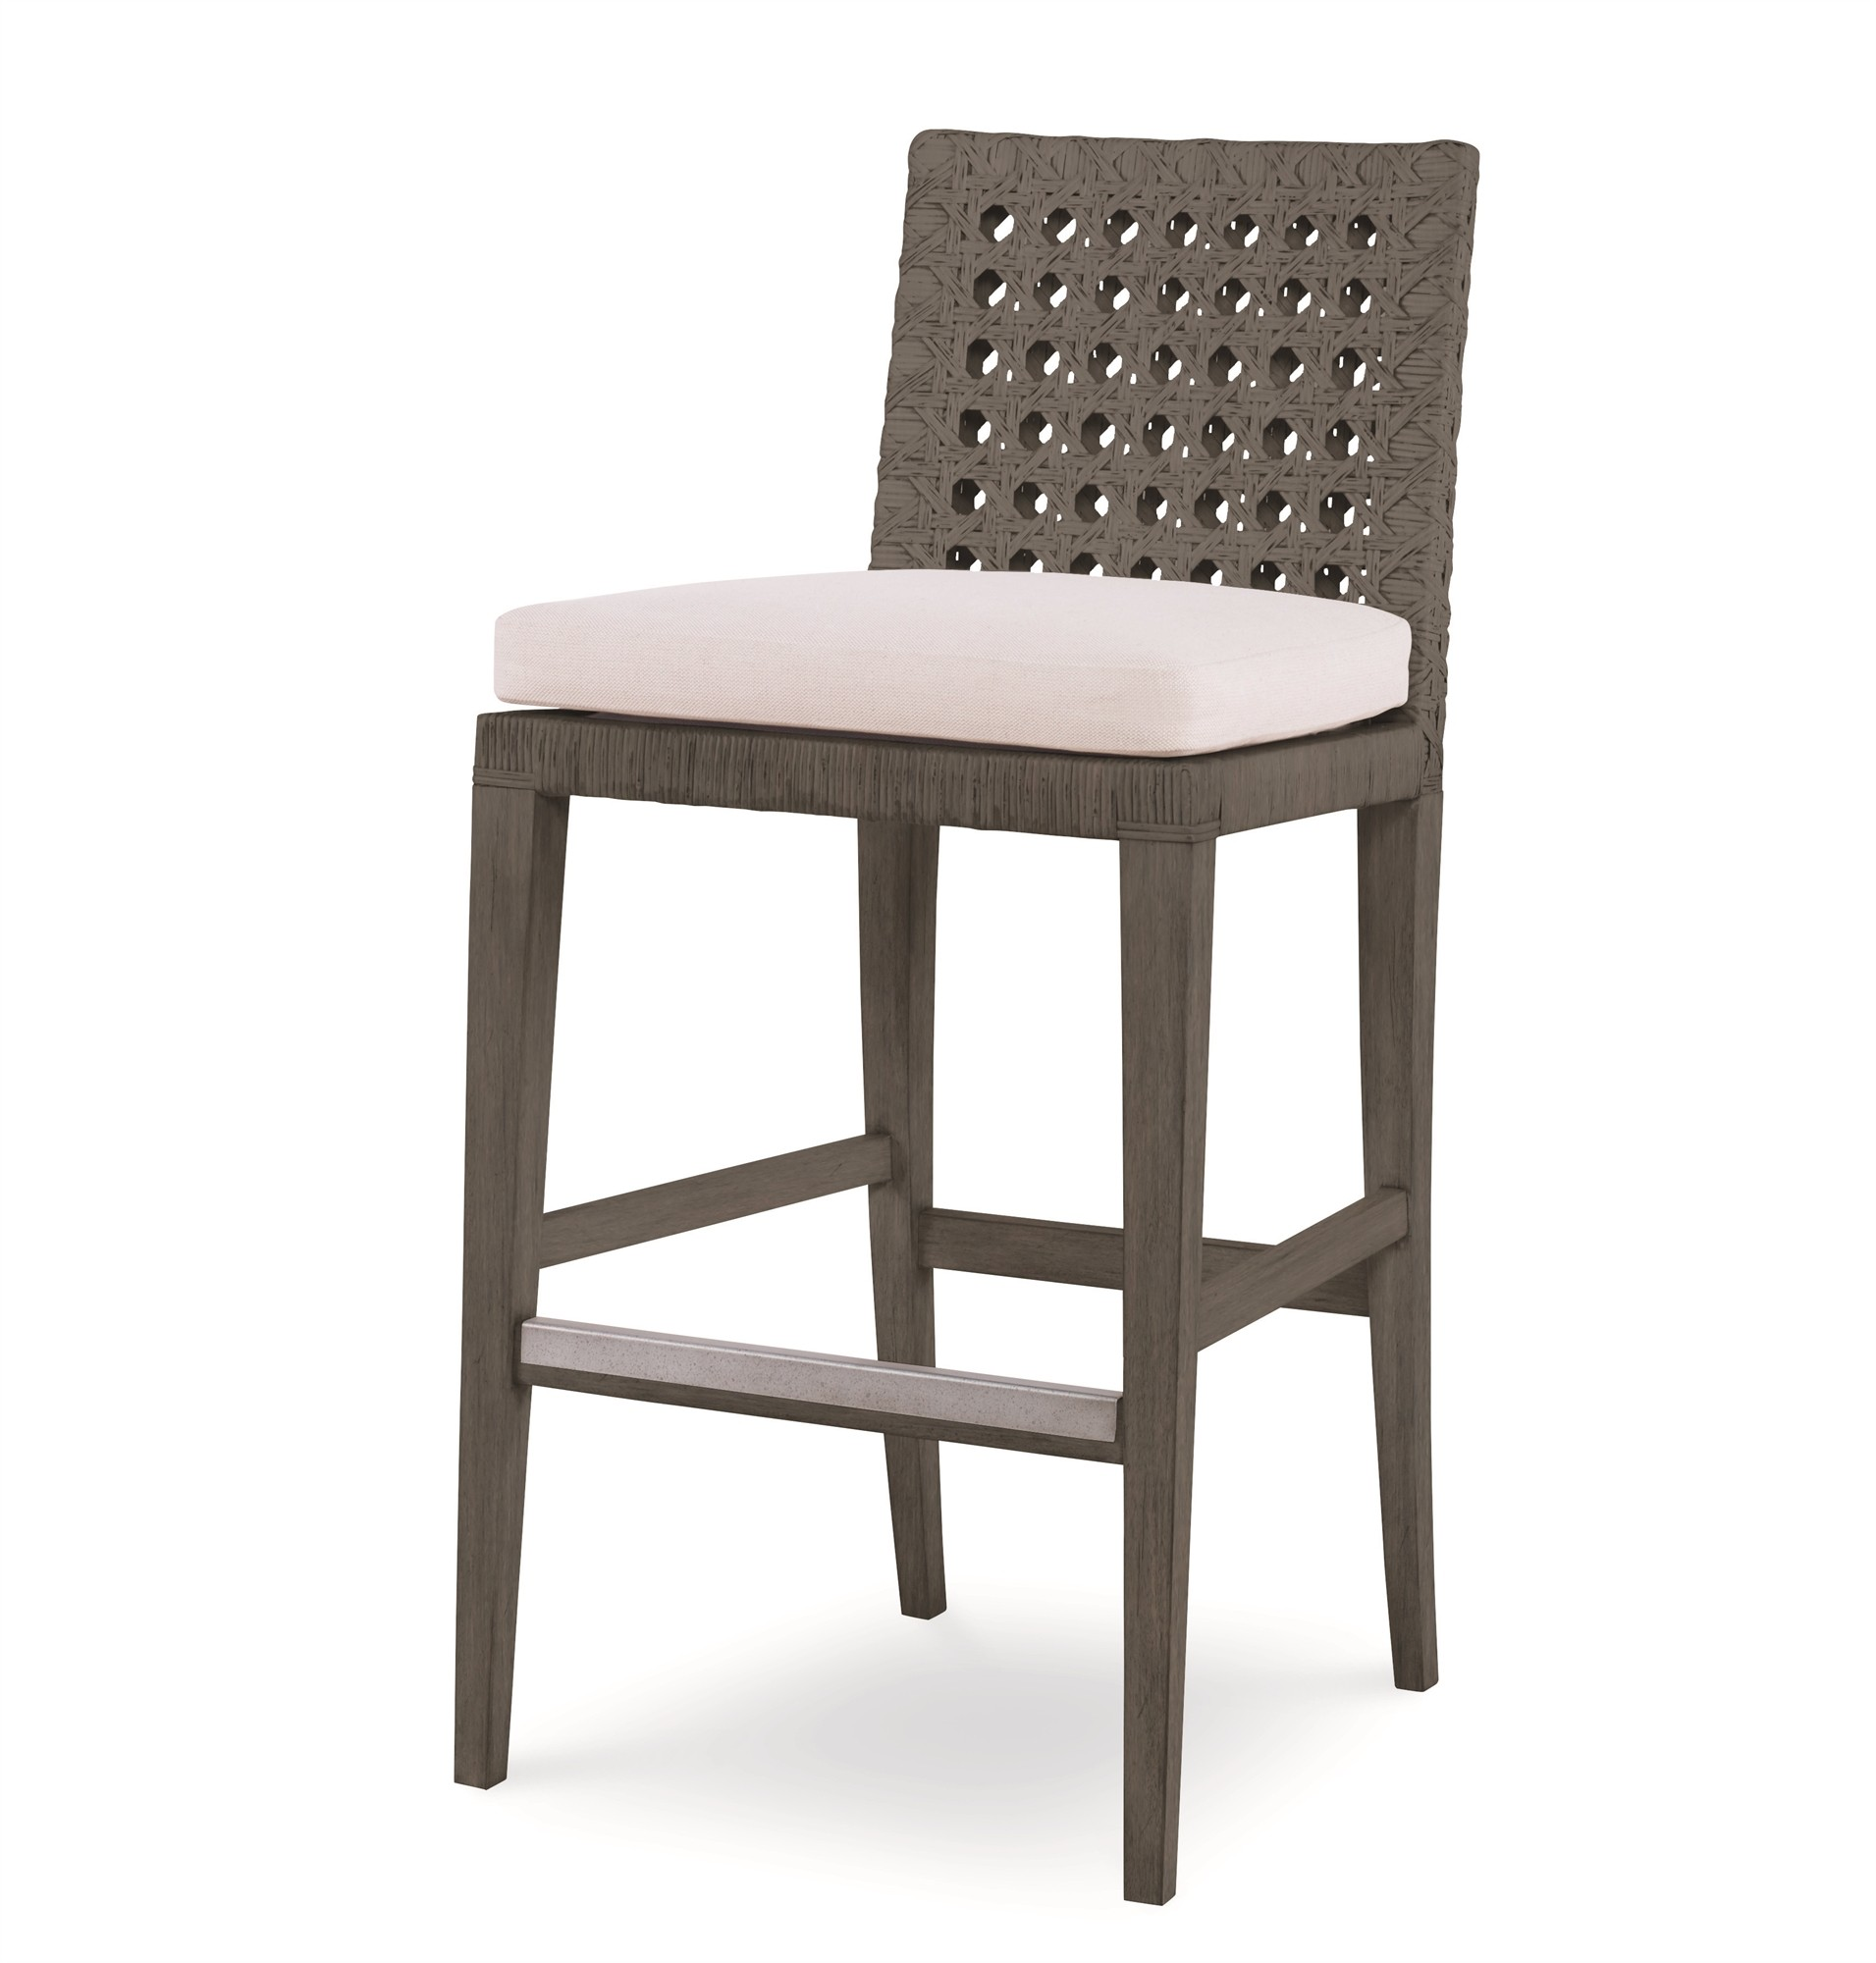 Litchfield Bar Stool-Mink Grey/Flax (Lw-046-113-07)